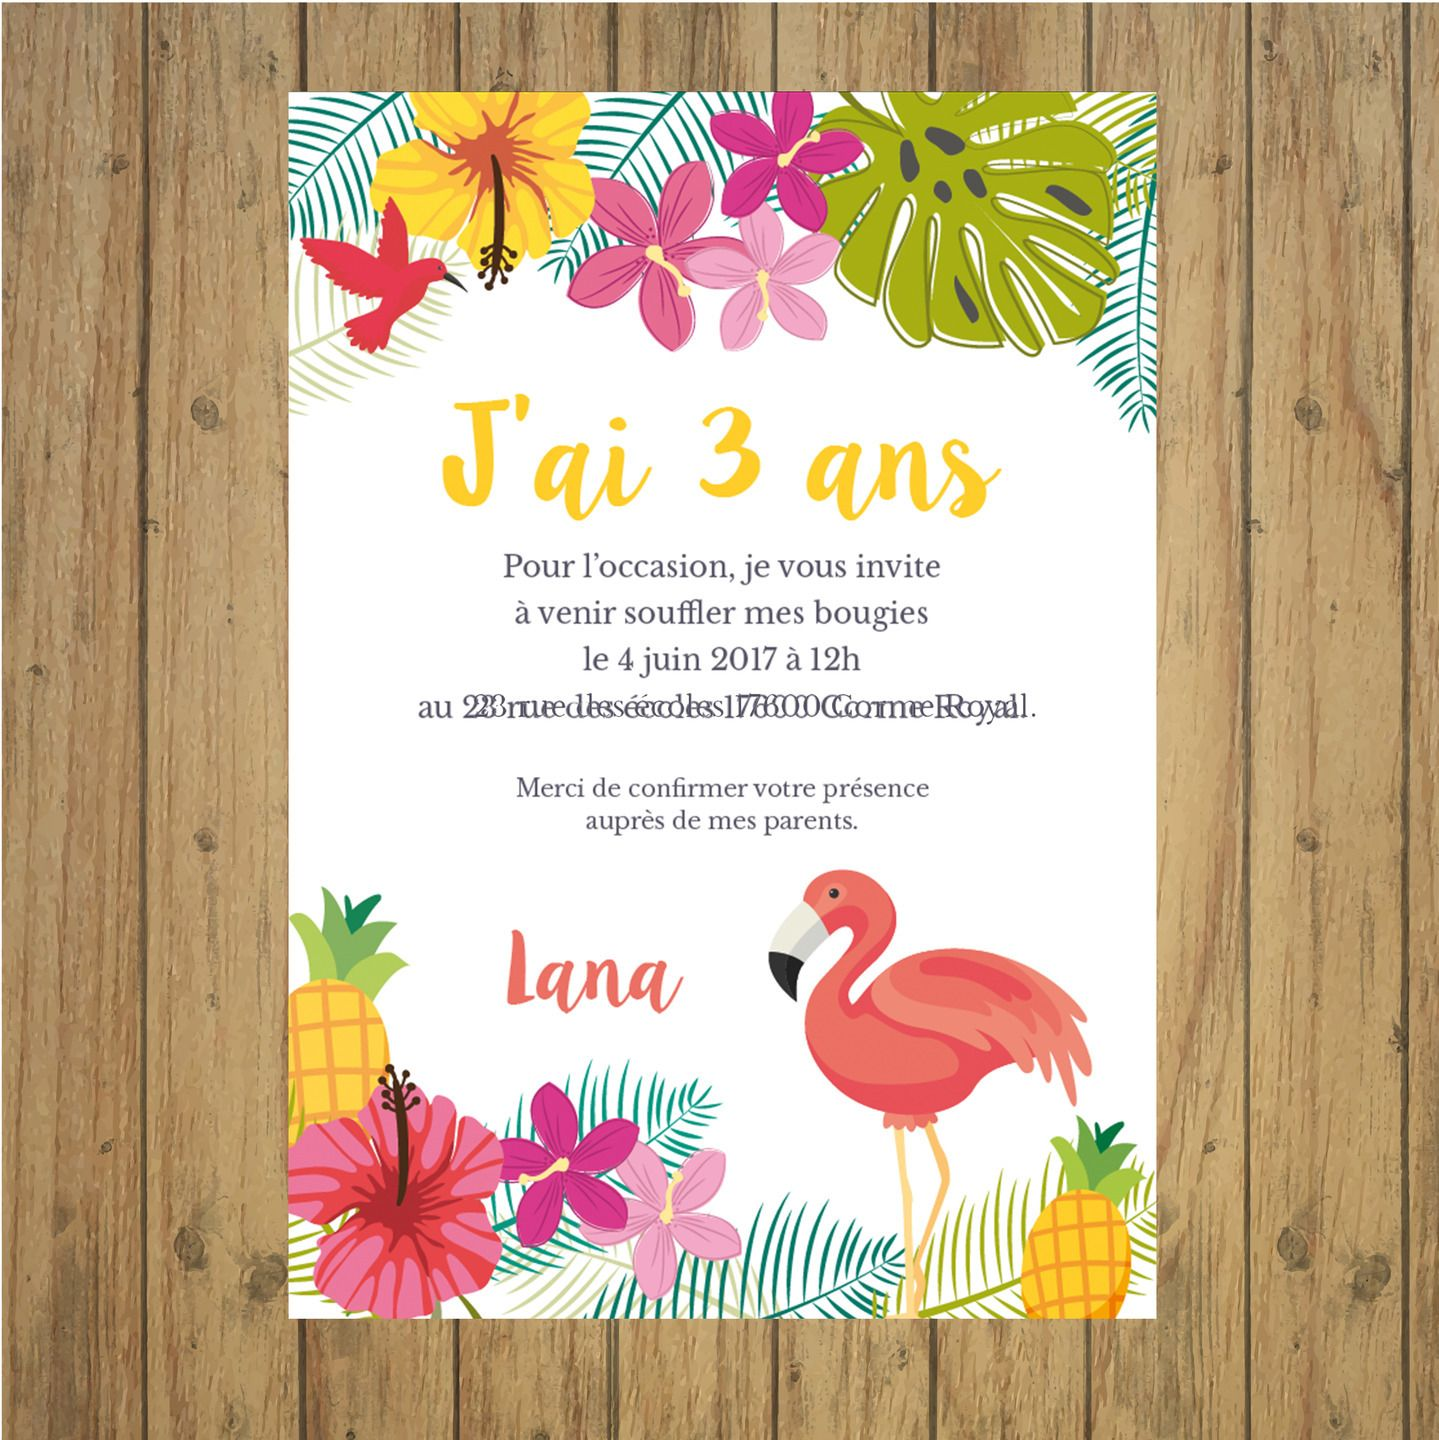 invitation anniversaire tropical carte papeterie flamant rose exotique jungle pinterest. Black Bedroom Furniture Sets. Home Design Ideas